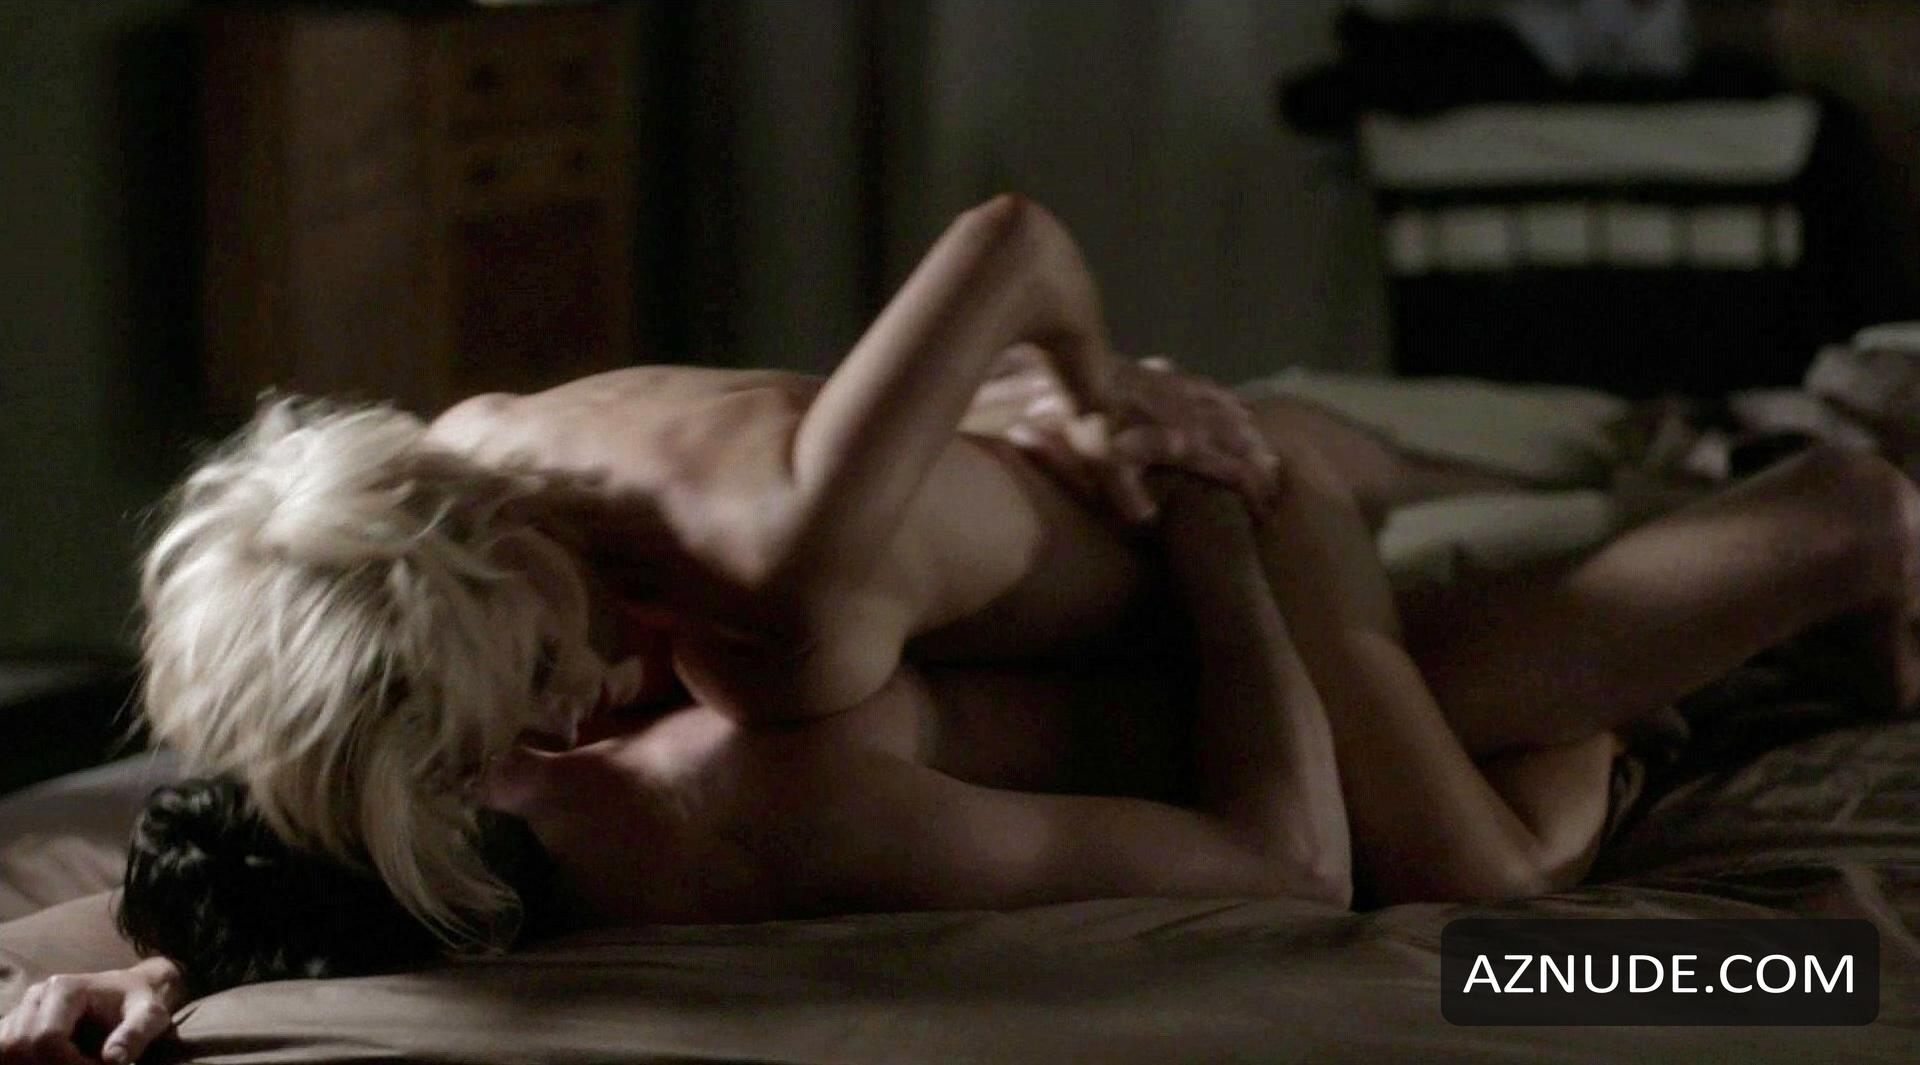 Katie adler nude and thefappening